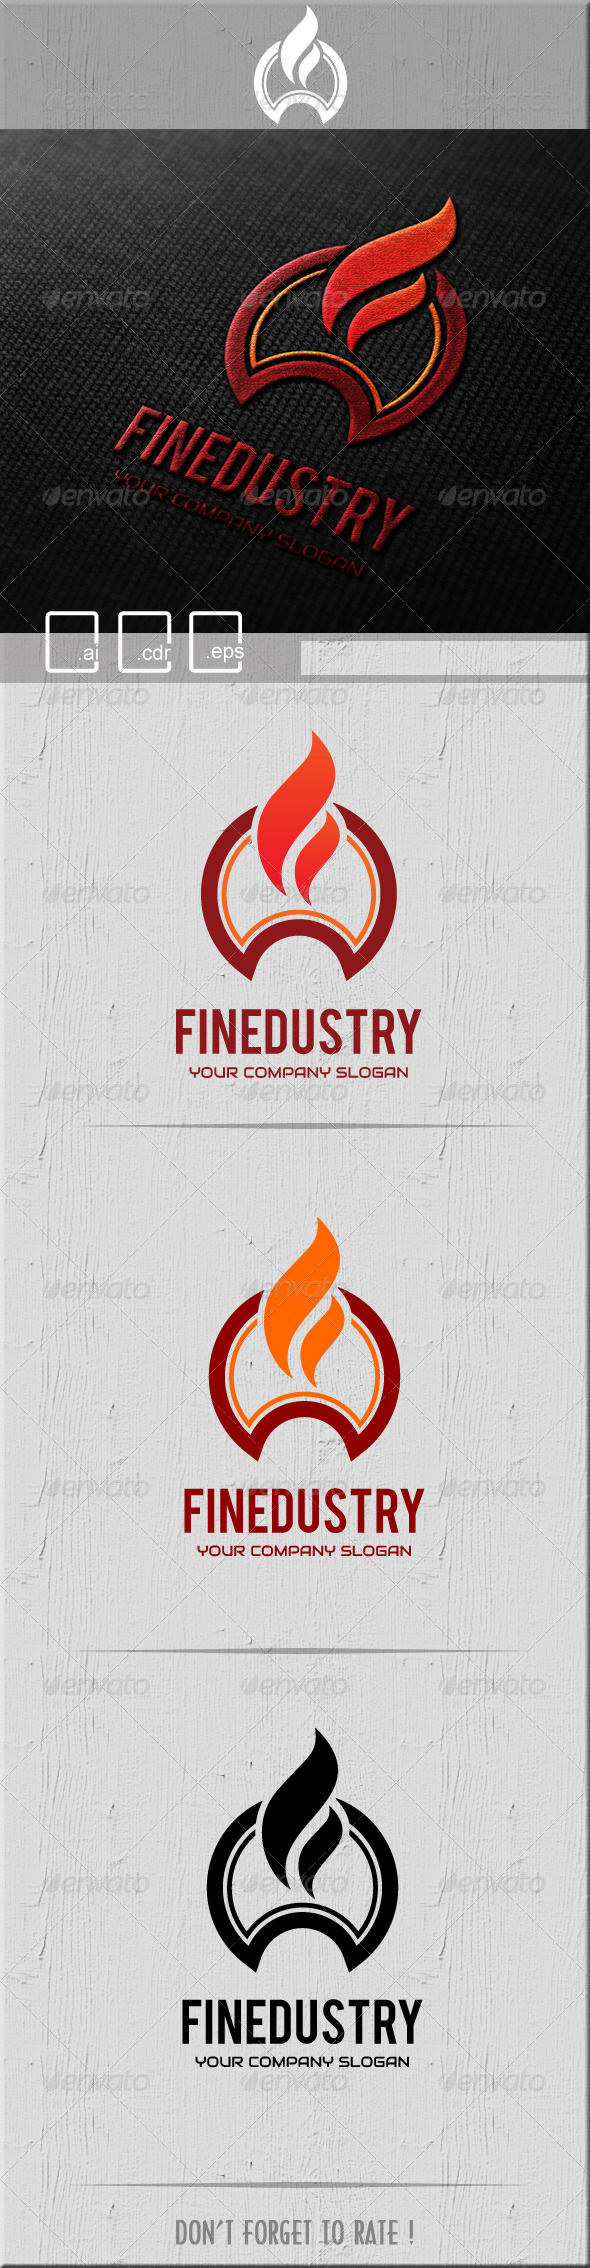 Finedustry Logo - Symbols Logo Templates